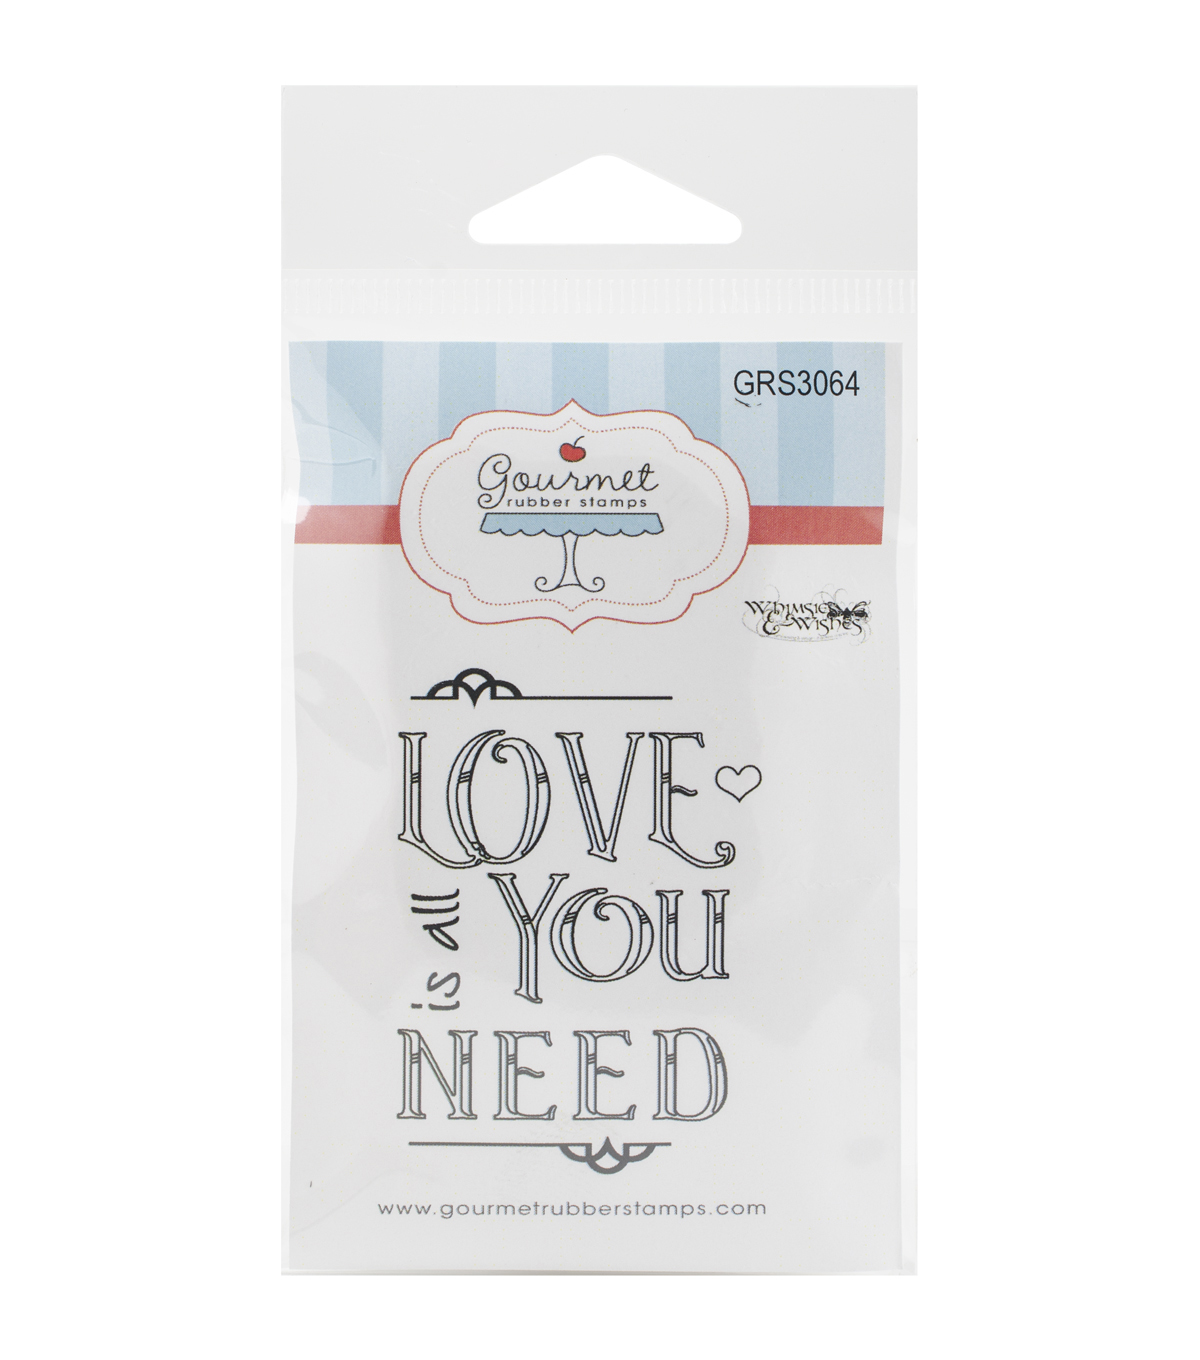 Gourmet Rubber Stamps Love Is All You Need Cling Stamps